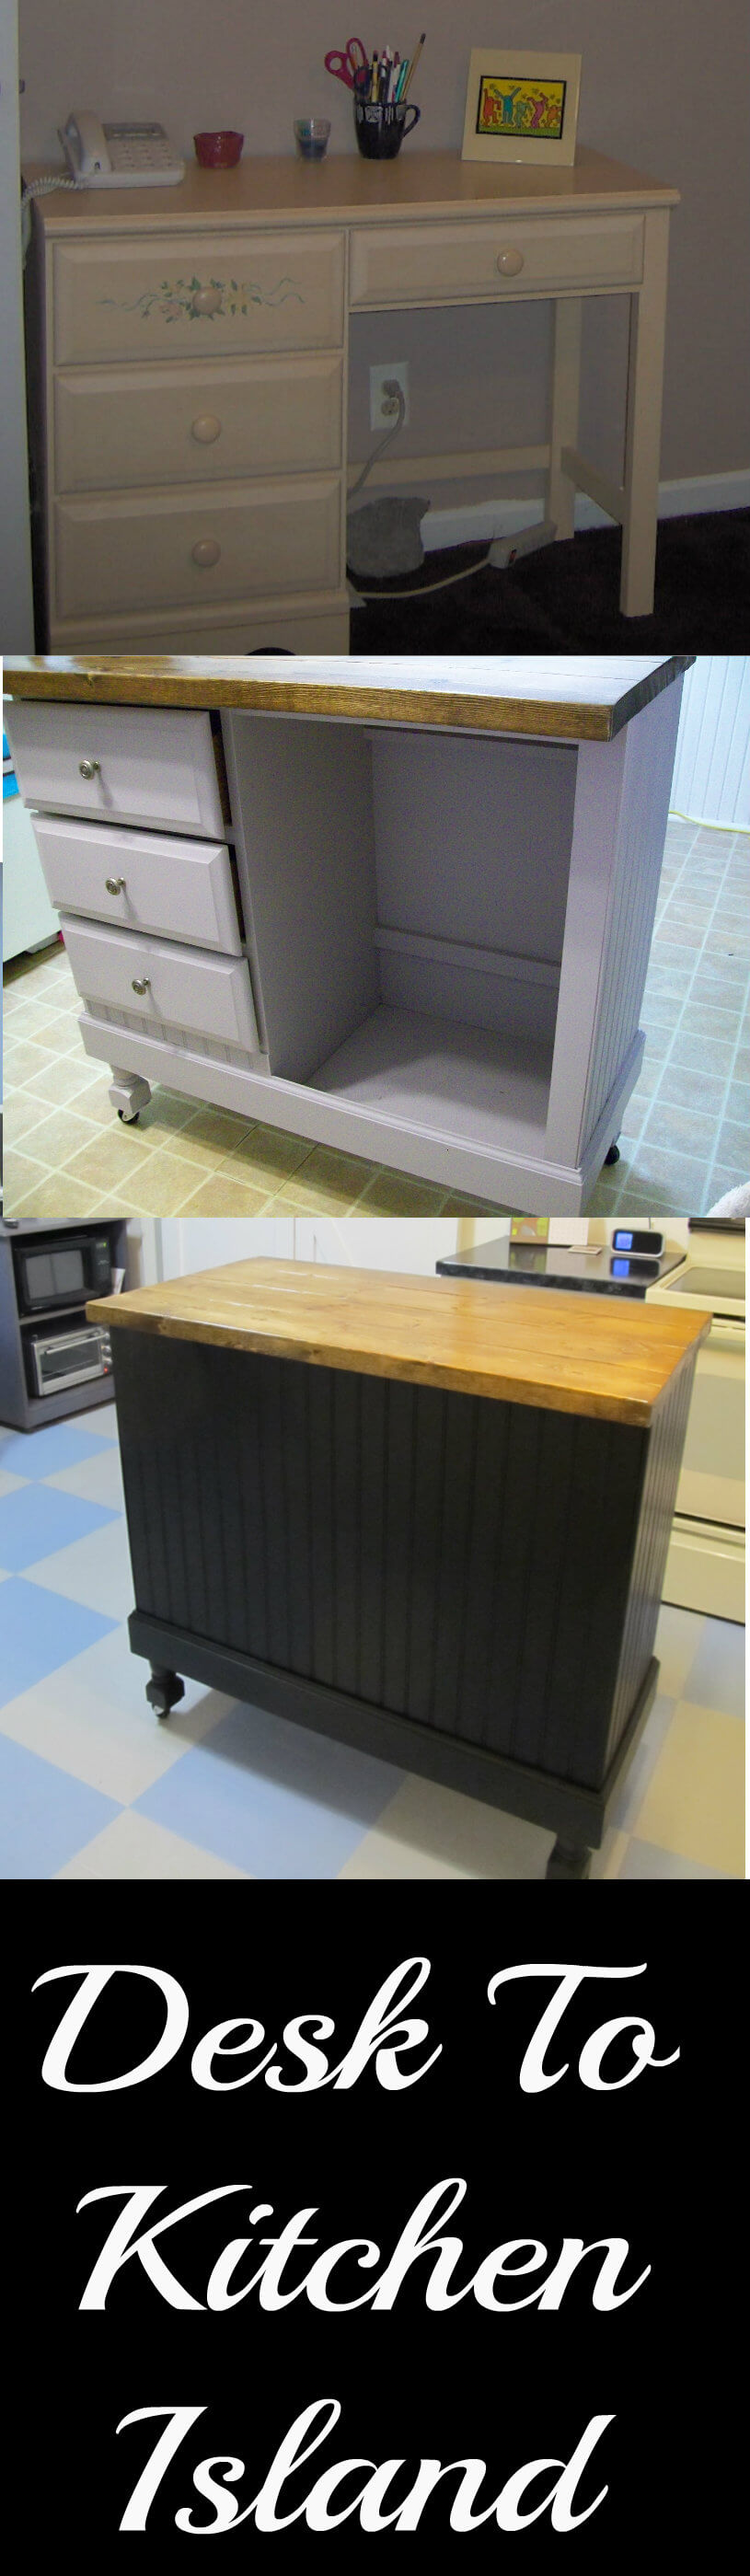 Make Your Kitchen Island with a Few Mods to This Desk